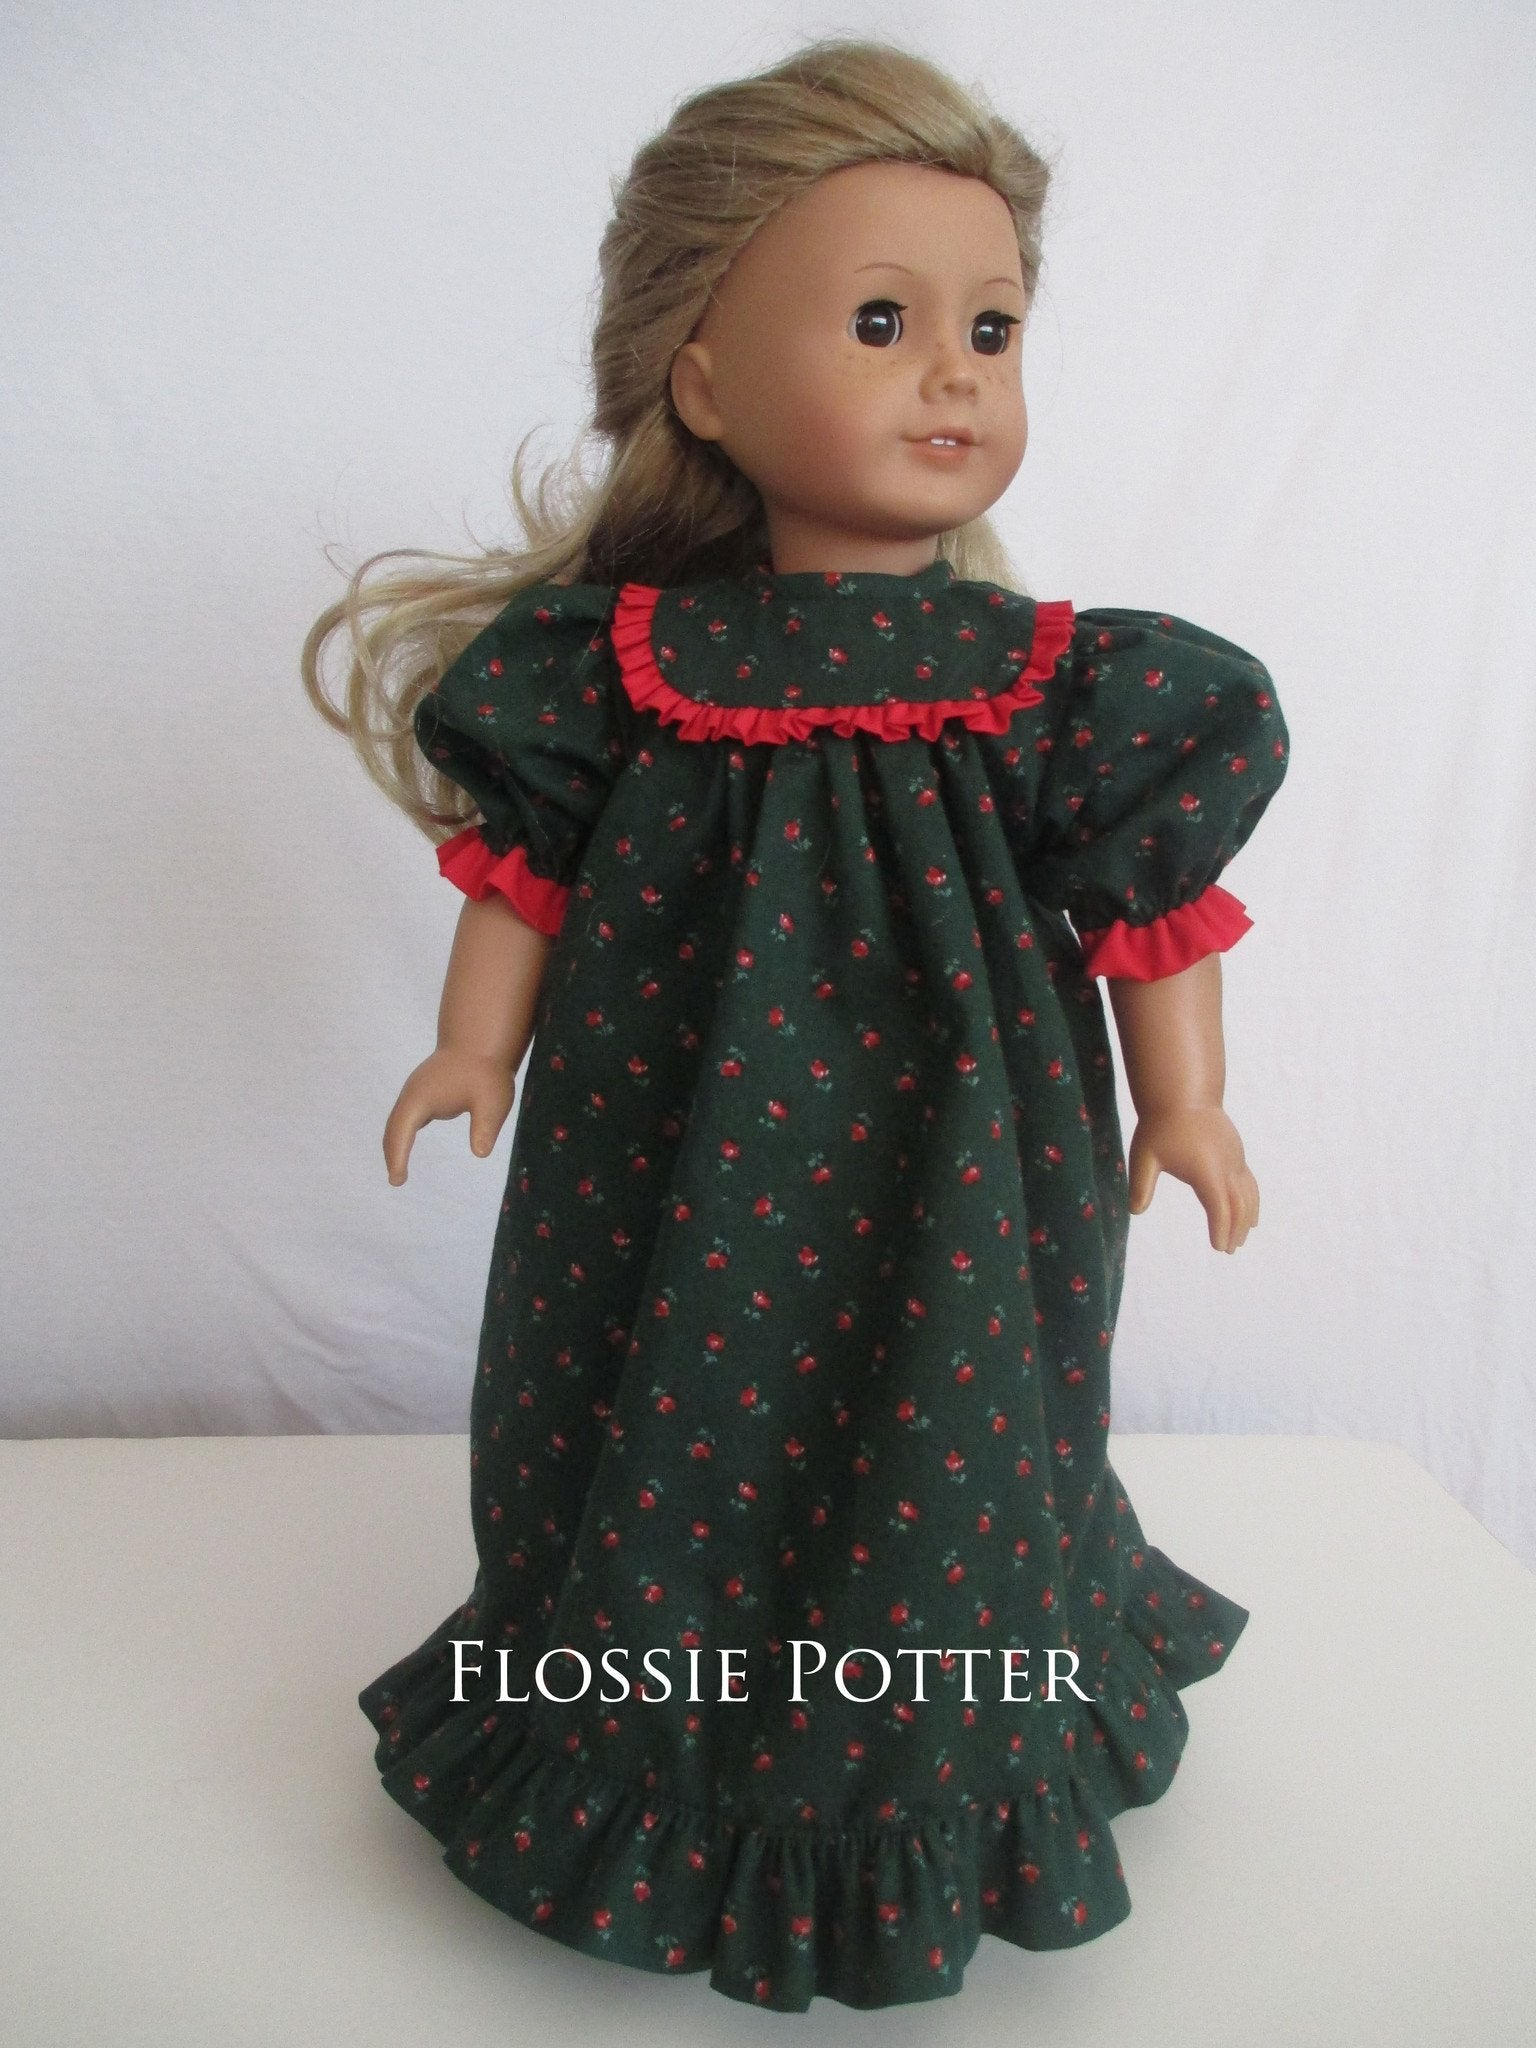 Flossie Potter Old Fashioned Nightgown Doll Clothes Pattern 18 inch ...